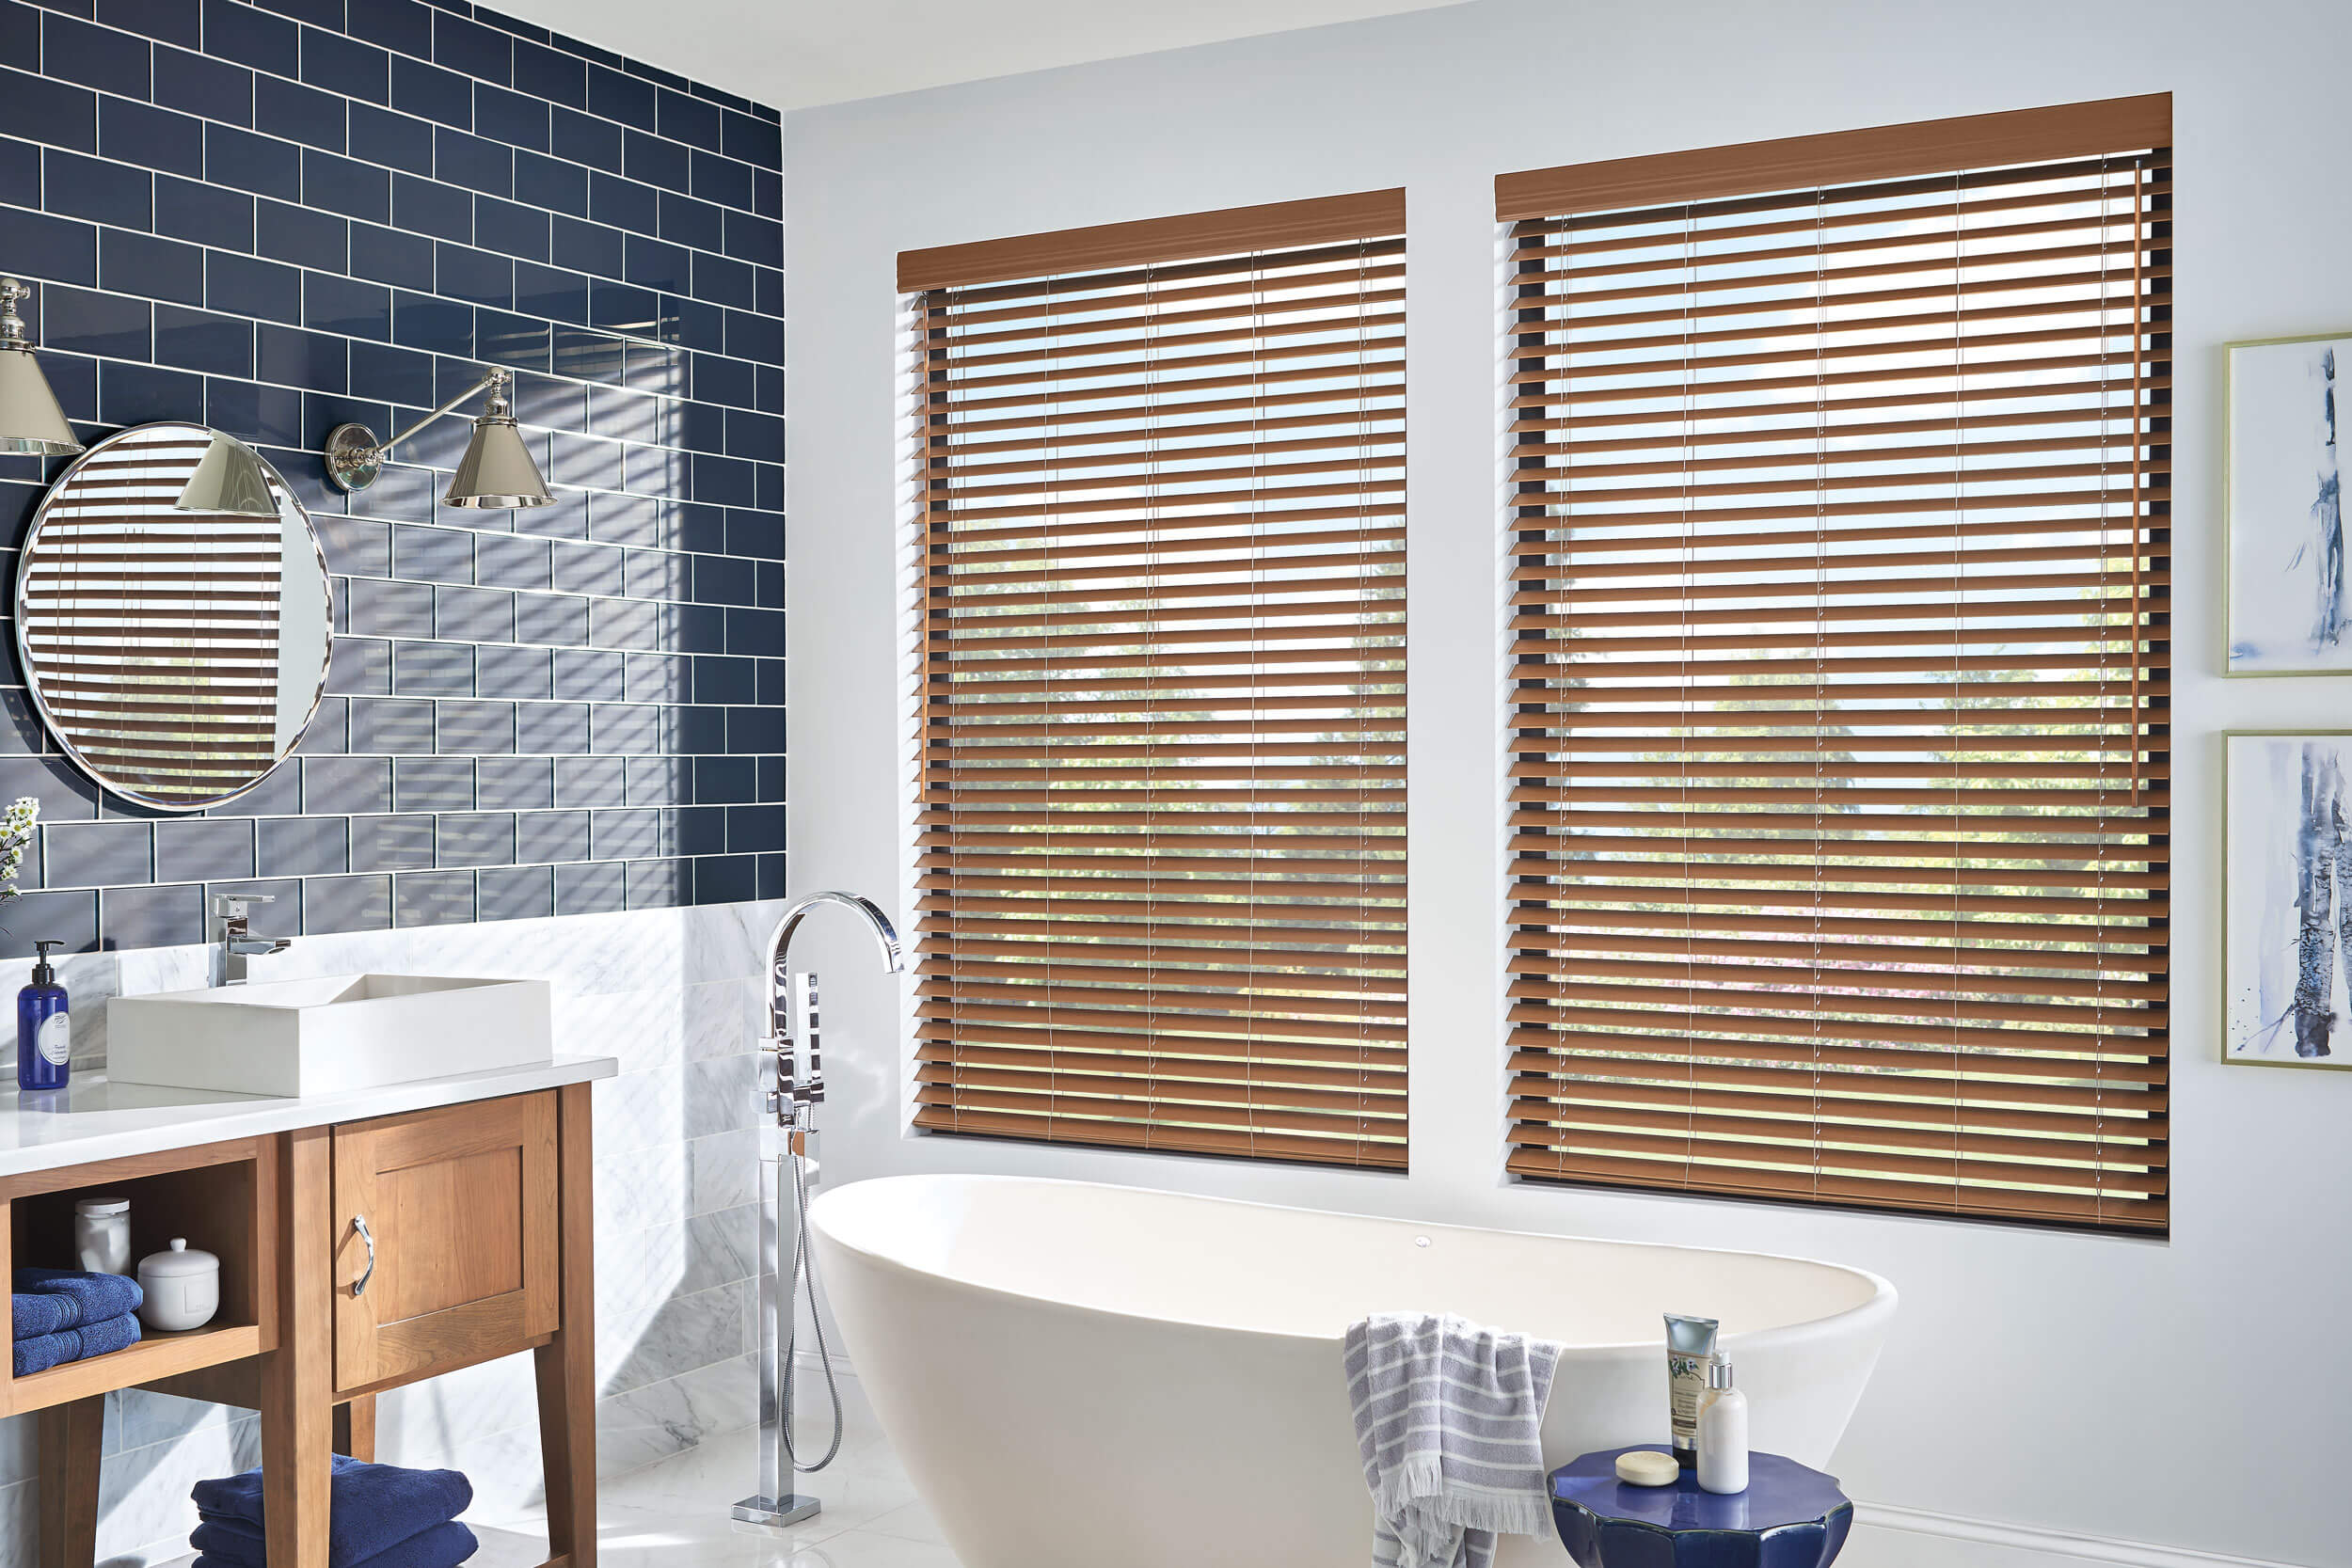 Bali Faux Wood Blinds installed in a bright bathroom